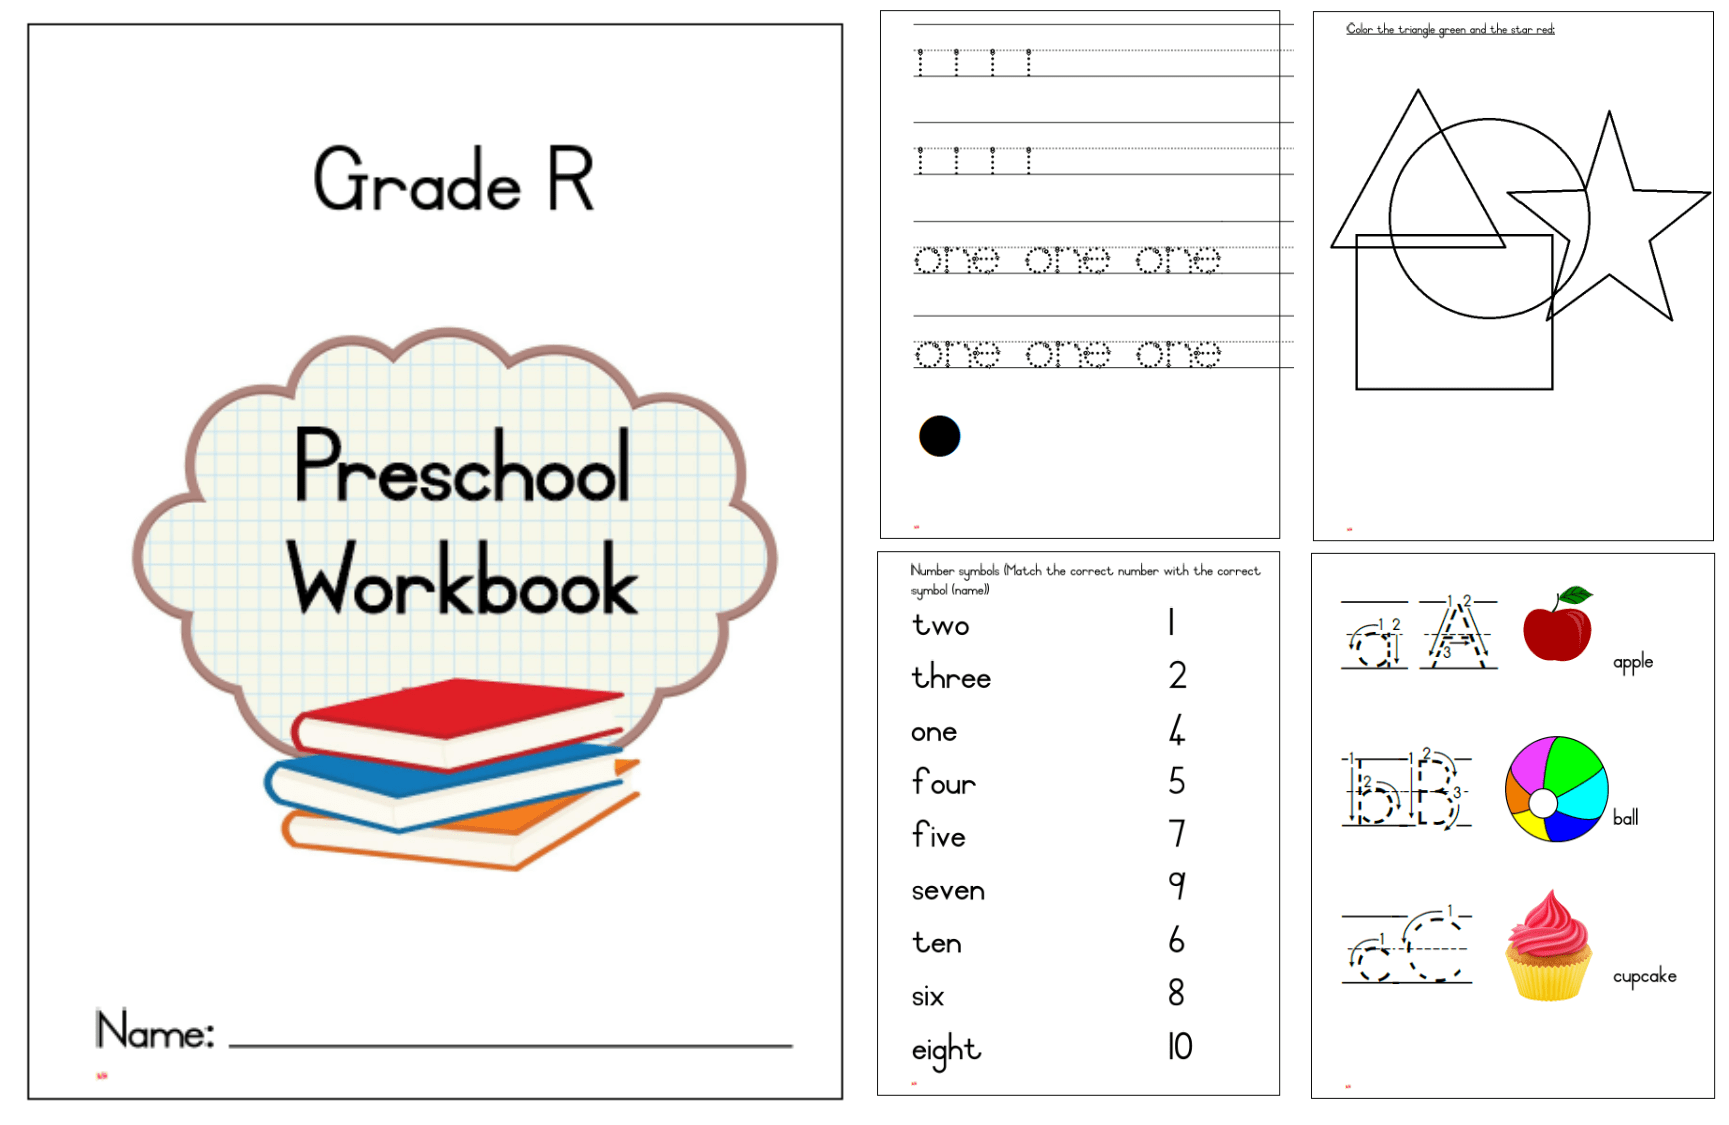 Gr R Preschool Workbook Eng Teacha